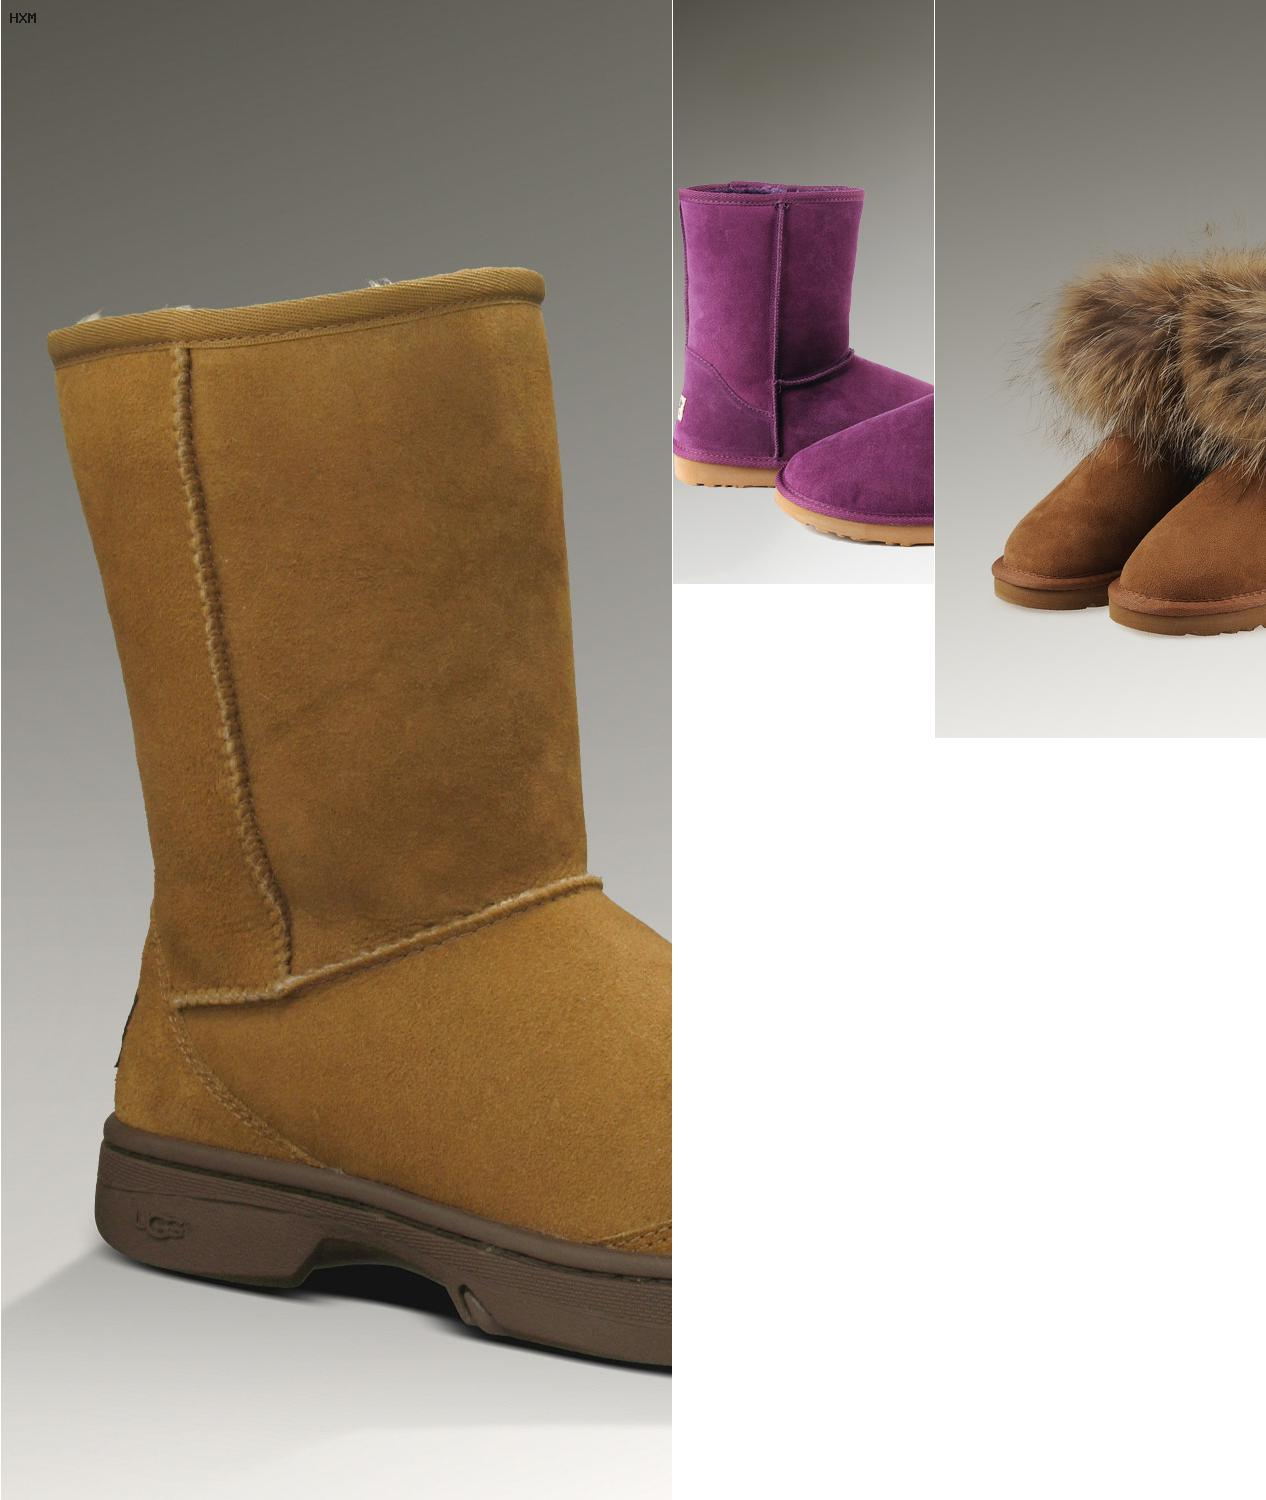 3764c738fdc inexpensive ugg boots bailey button zalando for sale af697 68d7d